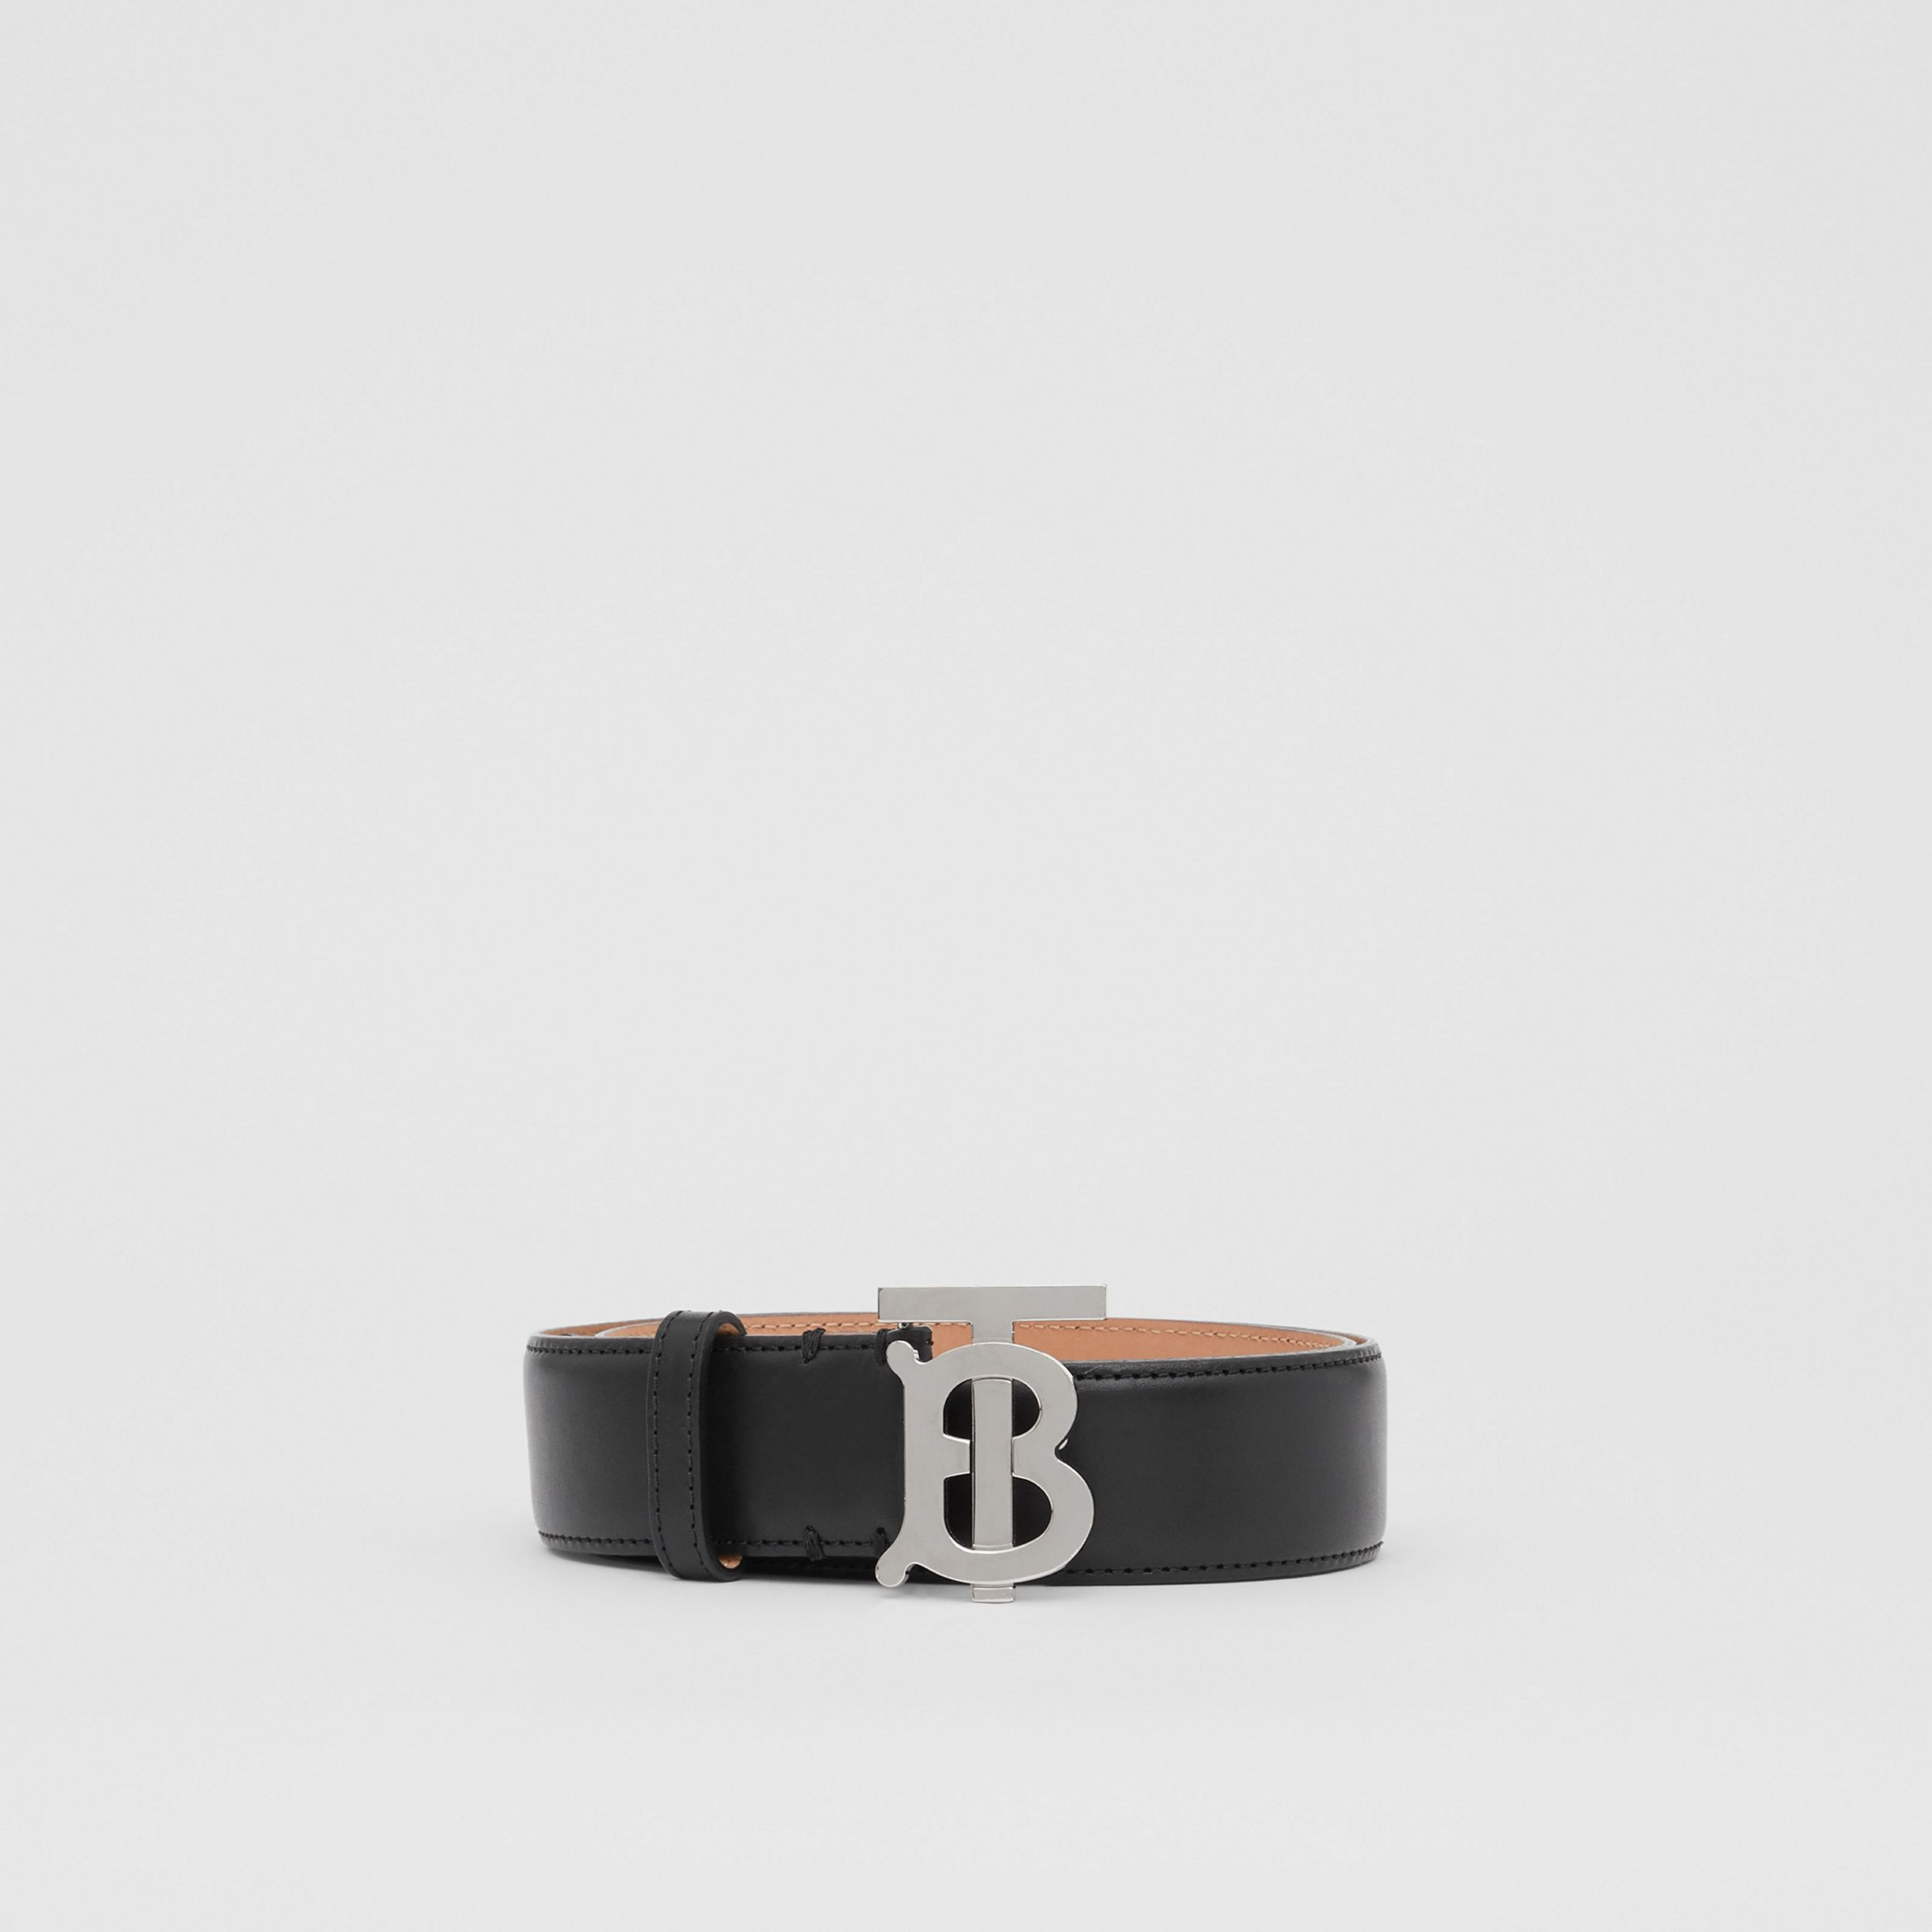 Monogram Motif Leather Belt in Black/palladio - Women | Burberry Singapore - 4